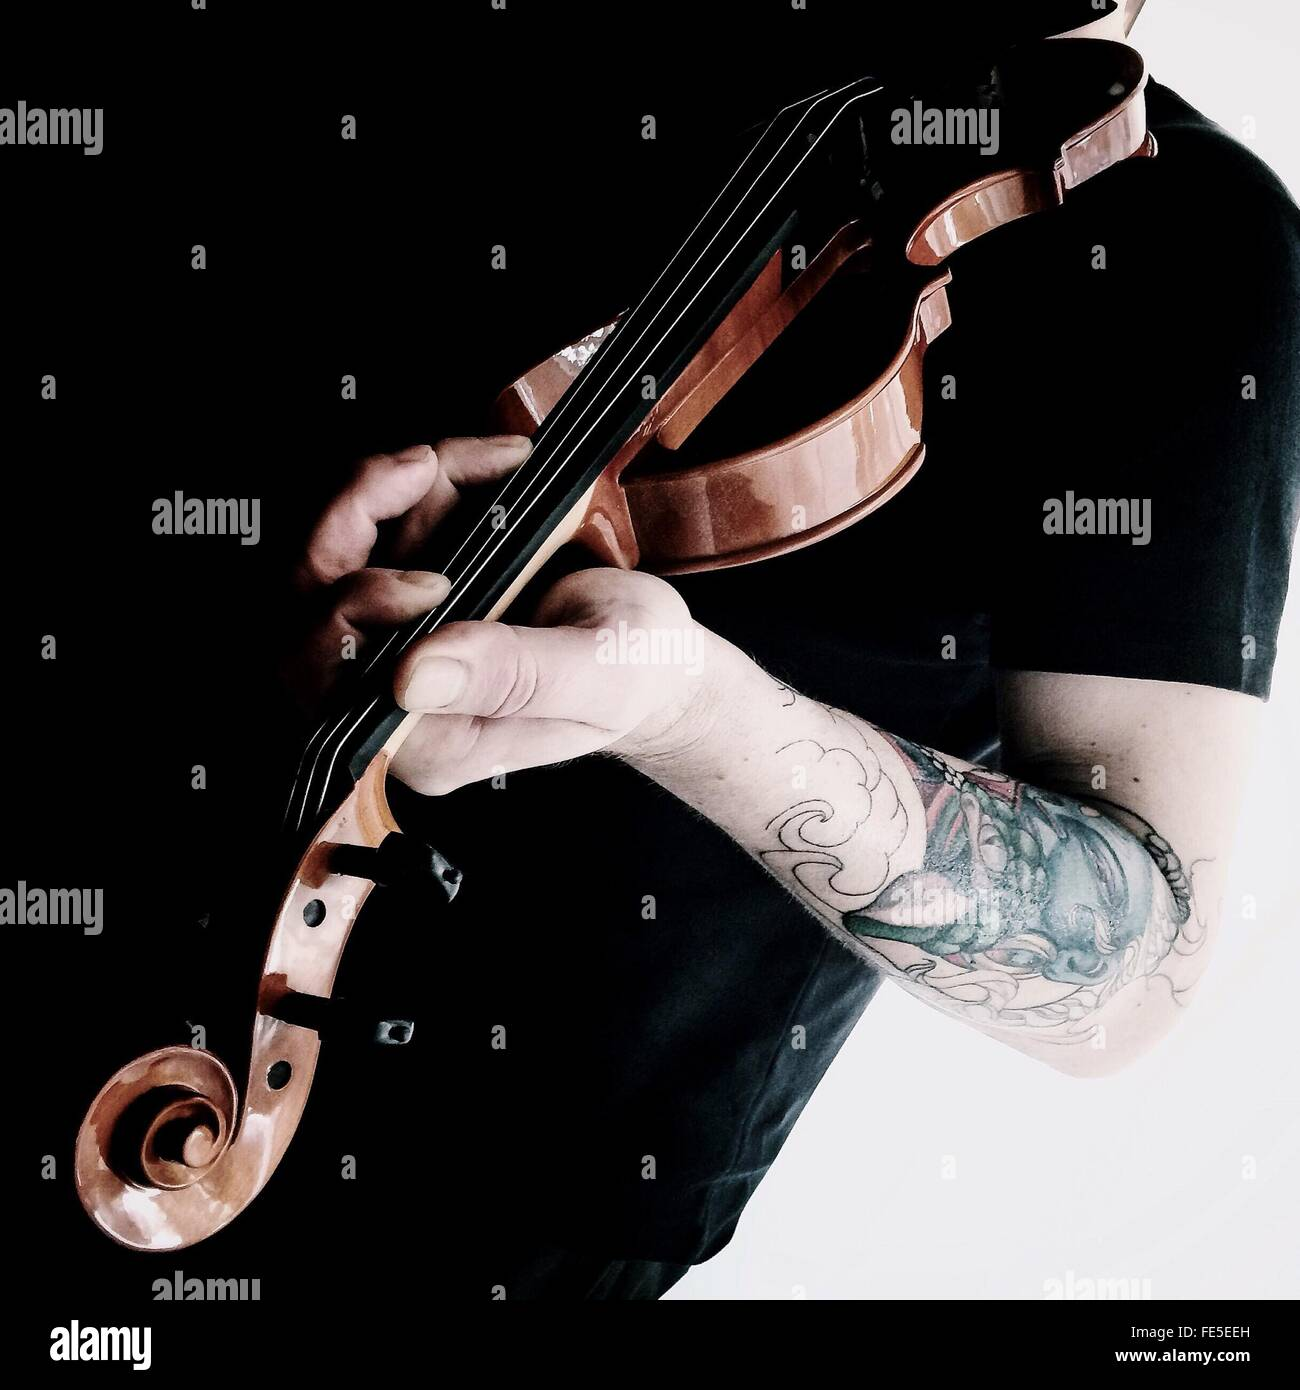 Male Violinist Playing Violin - Stock Image